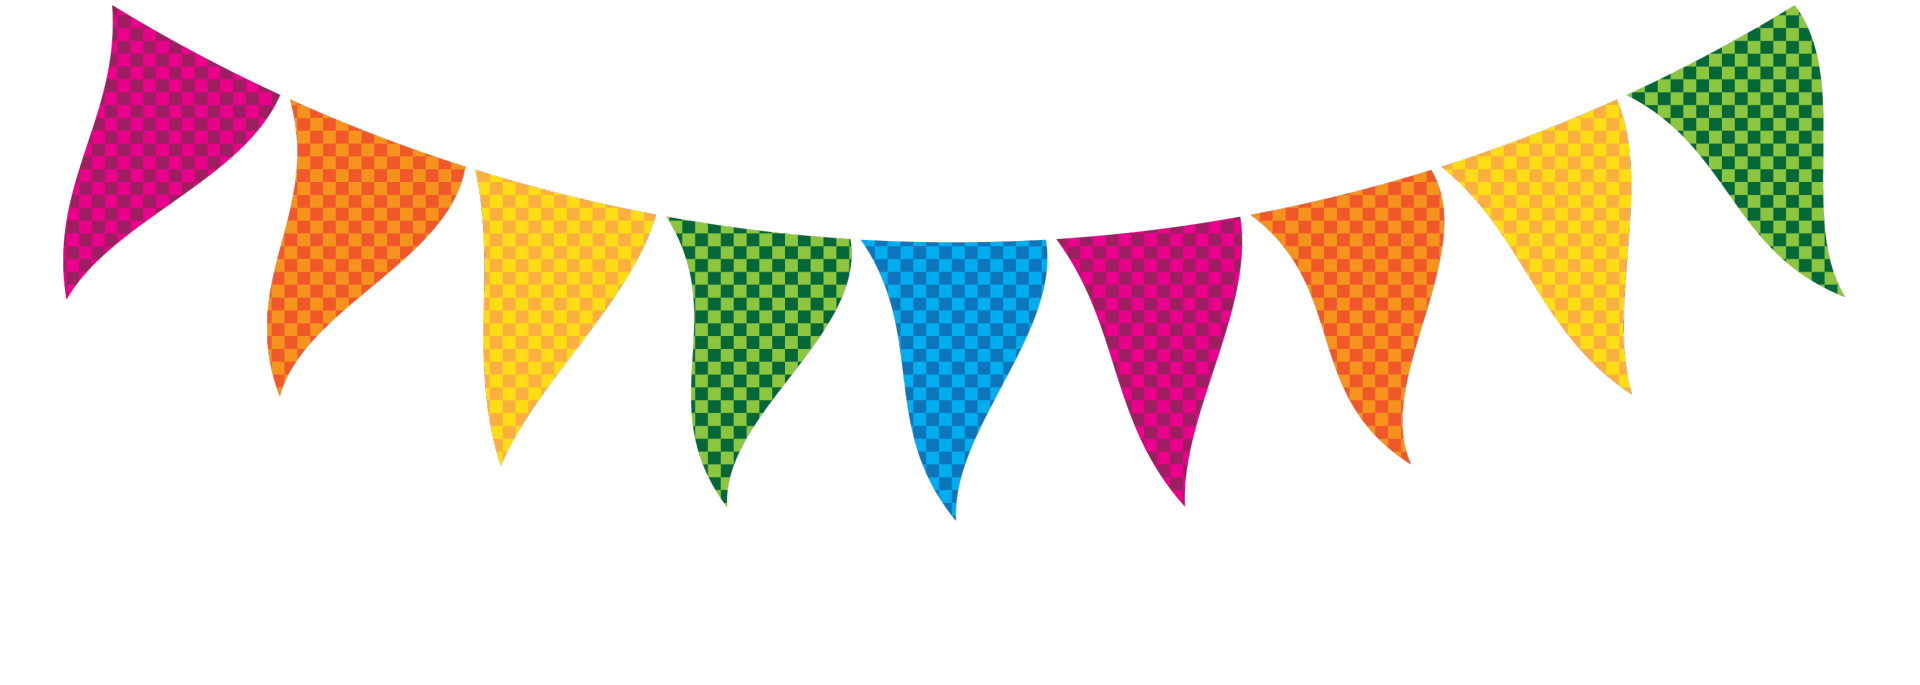 Banner clip art theveliger. Banners clipart flag